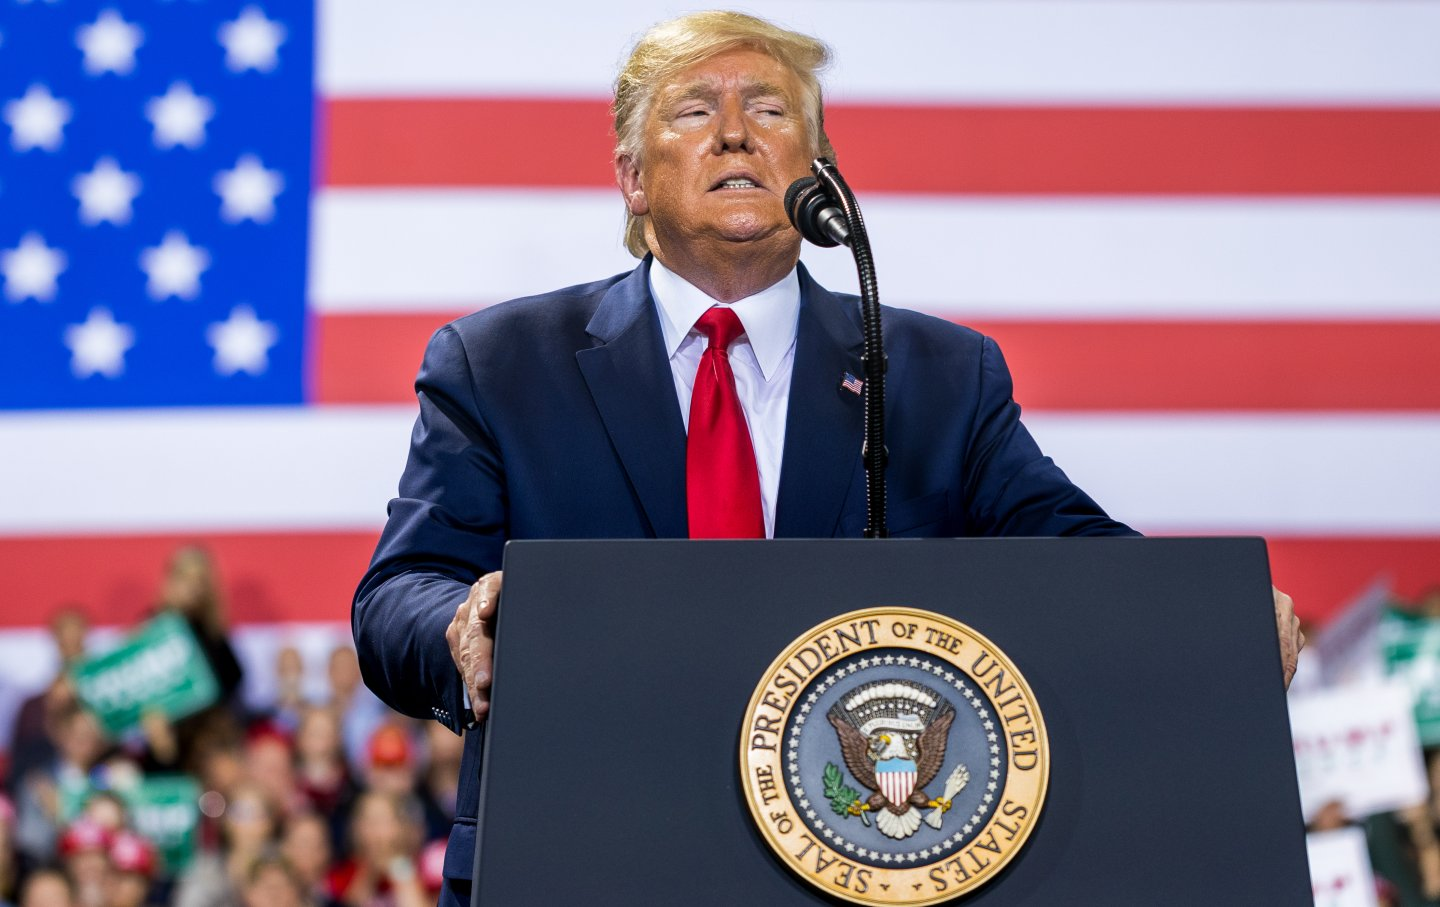 Trump in front of an American flag